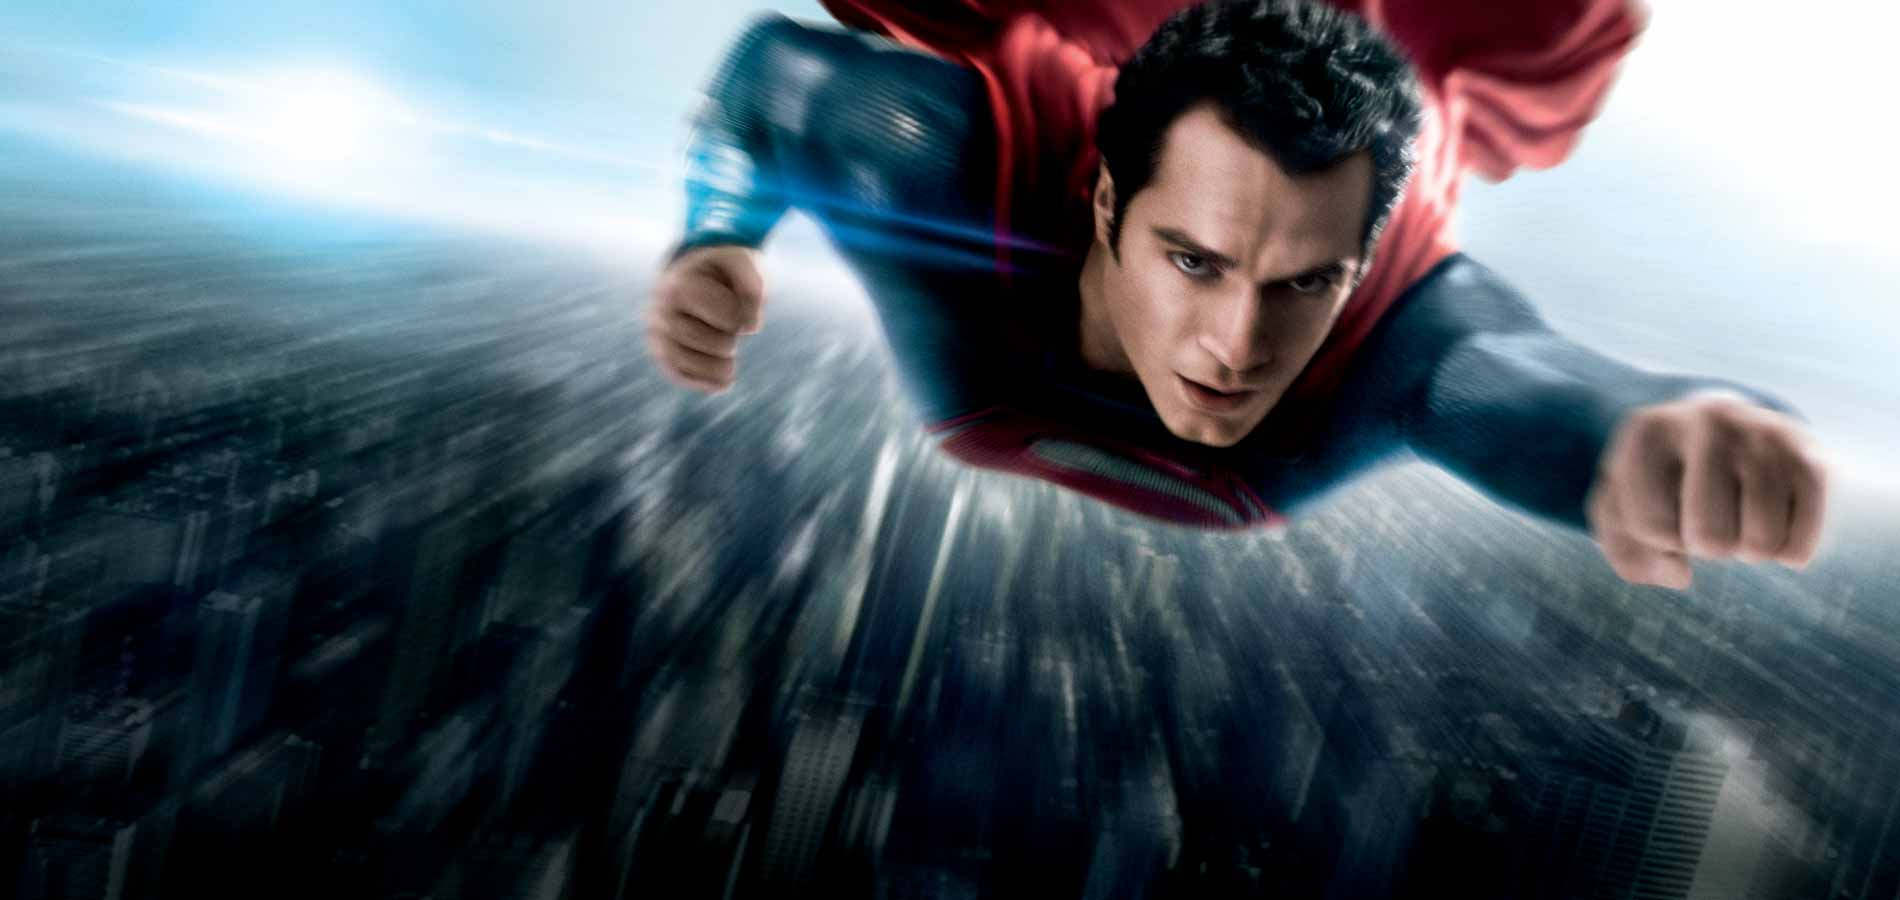 Superman Images HD Wallpaper And Background Photos